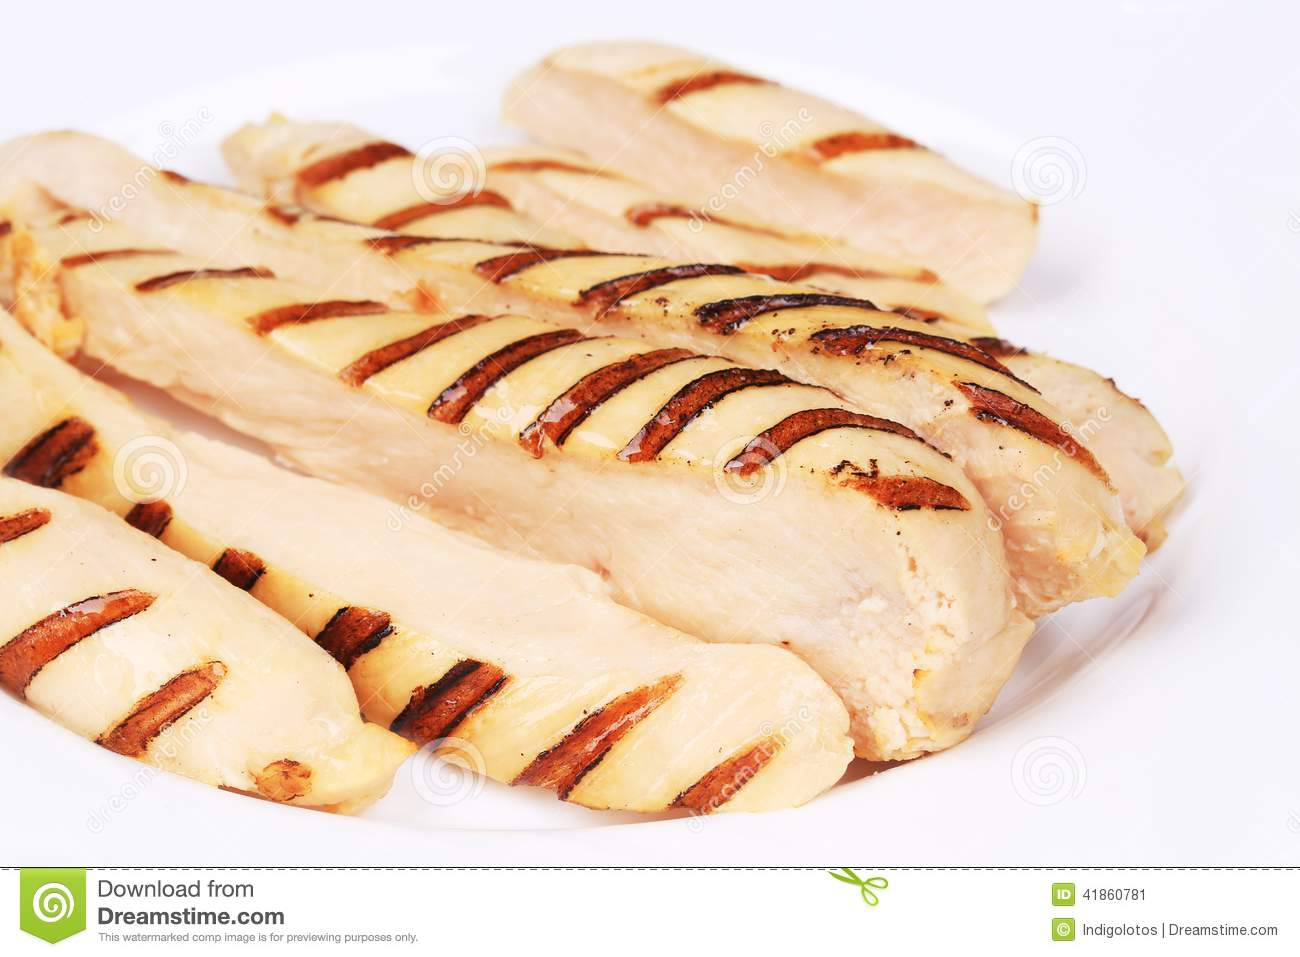 how to cut cooked chicken breast